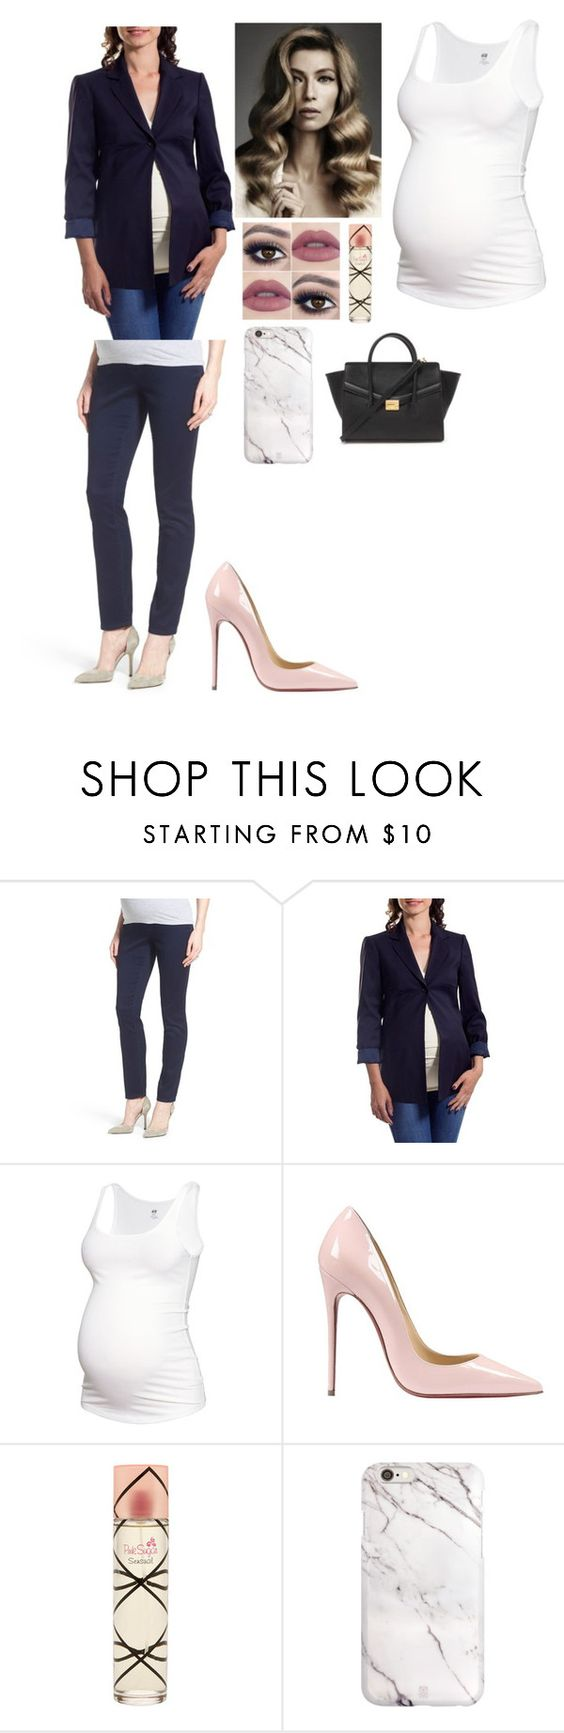 """""""Classy maternity look"""" by dallaslover22 ❤ liked on Polyvore featuring 1822 Denim, Eva Alexander, H&M, Christian Louboutin, Aquolina, Forever 21, women's clothing, women's fashion, women and female"""